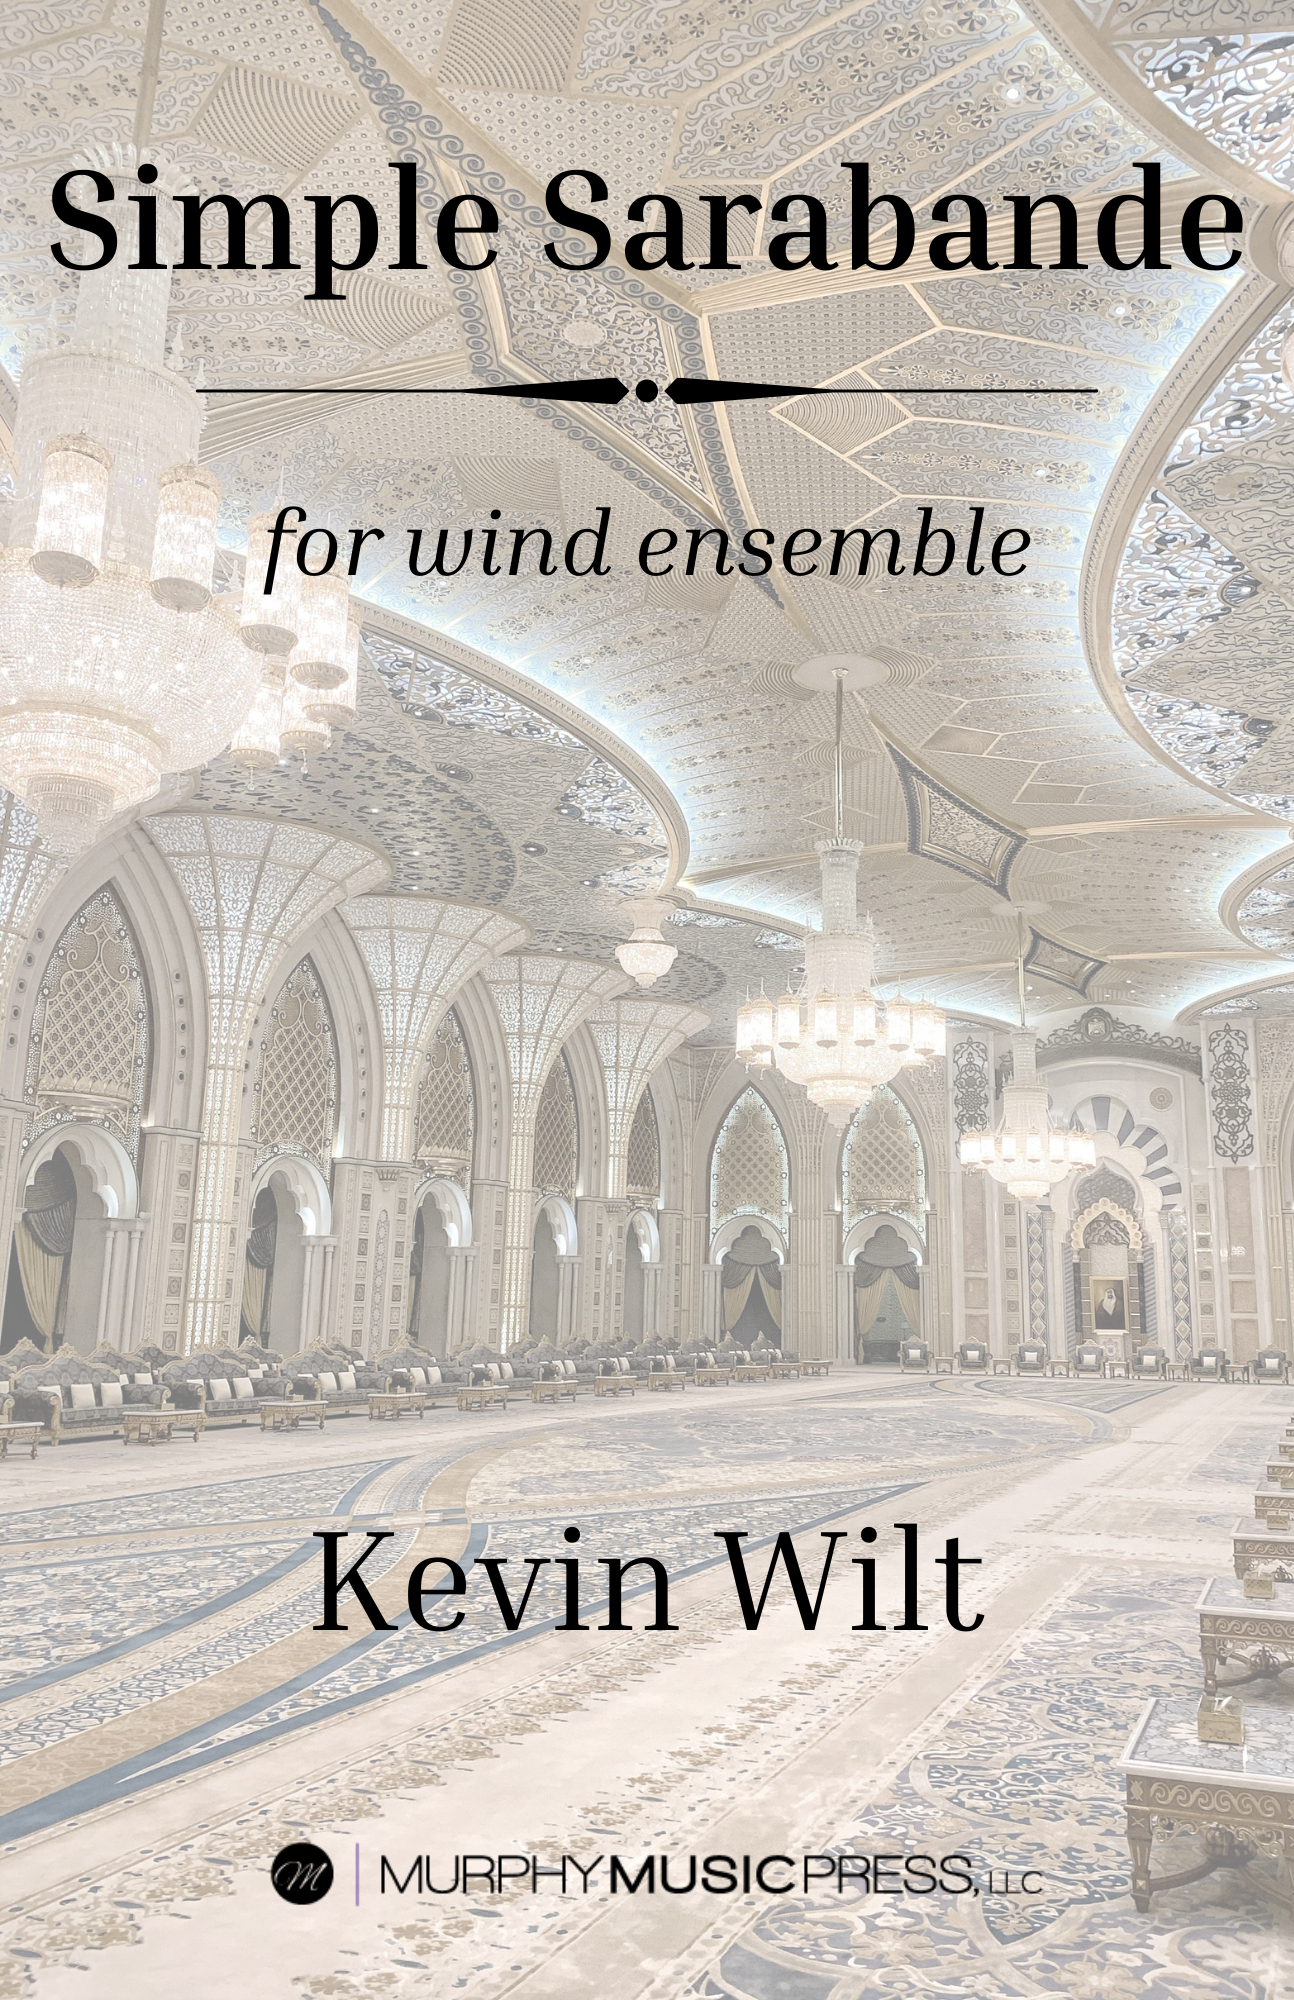 Simple Sarabande by Kevin Wilt